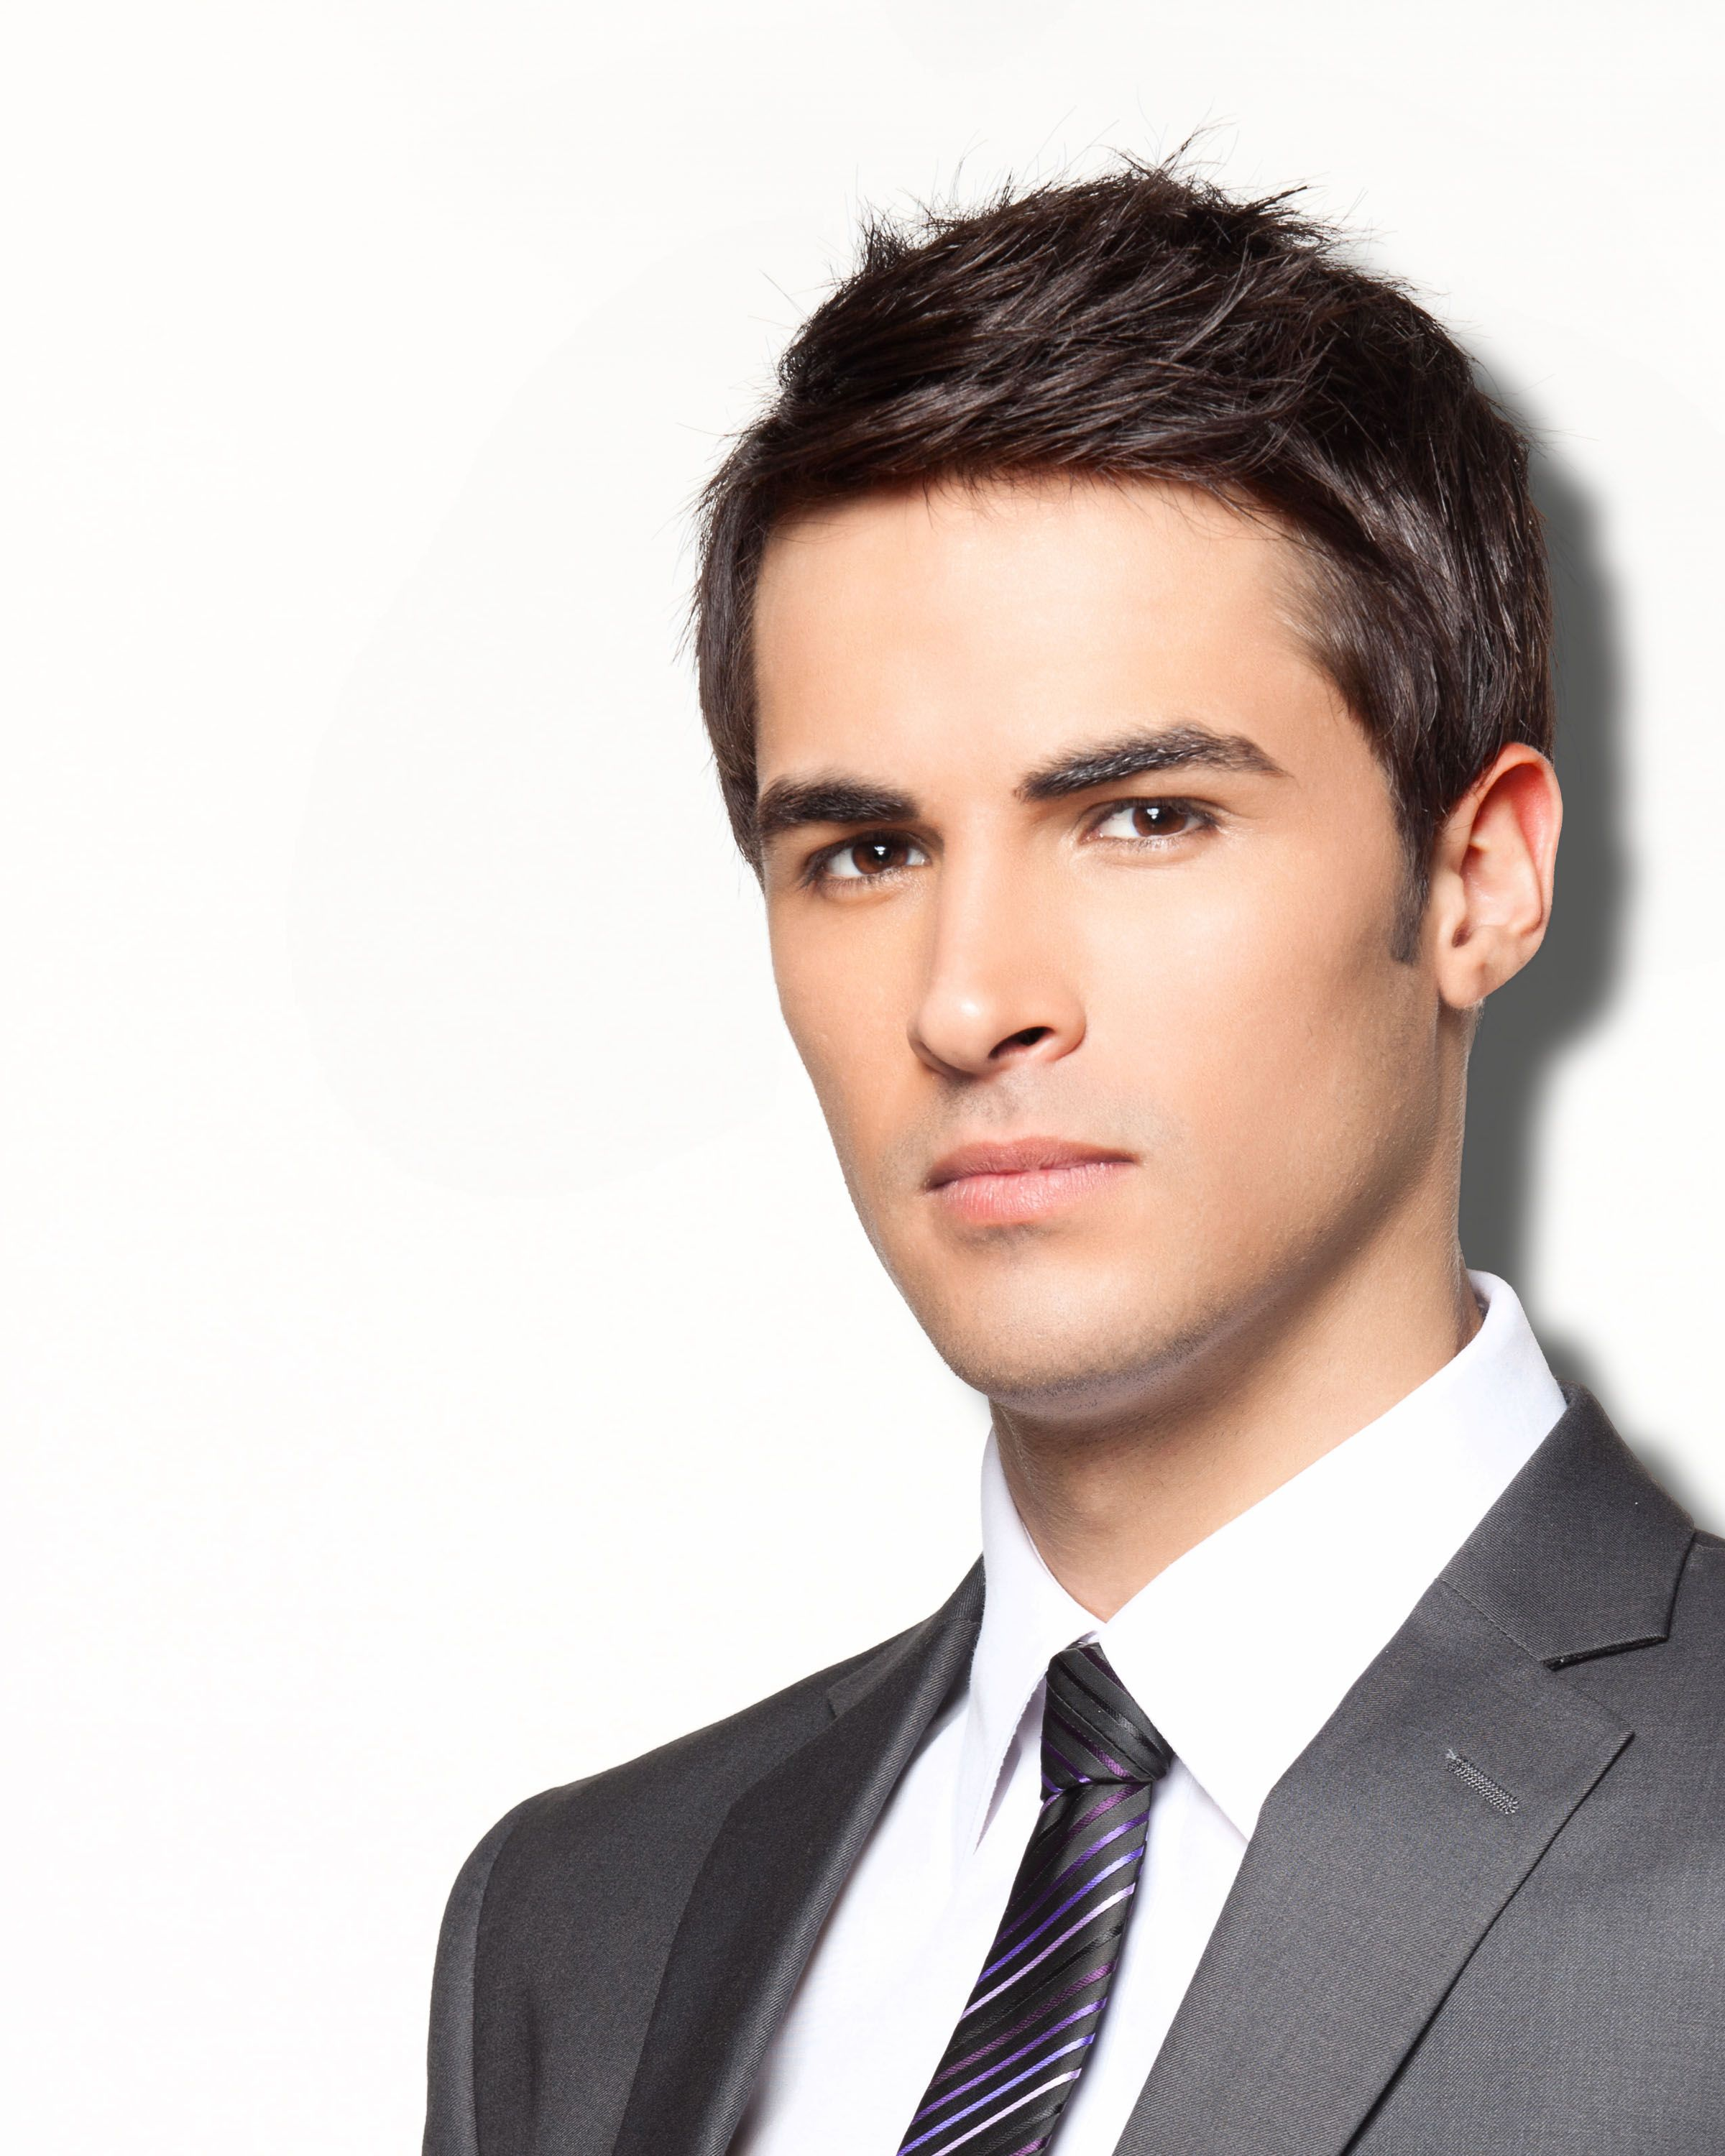 Mens haircut san antonio this weekus style tip is for the guys for a fashion forward style